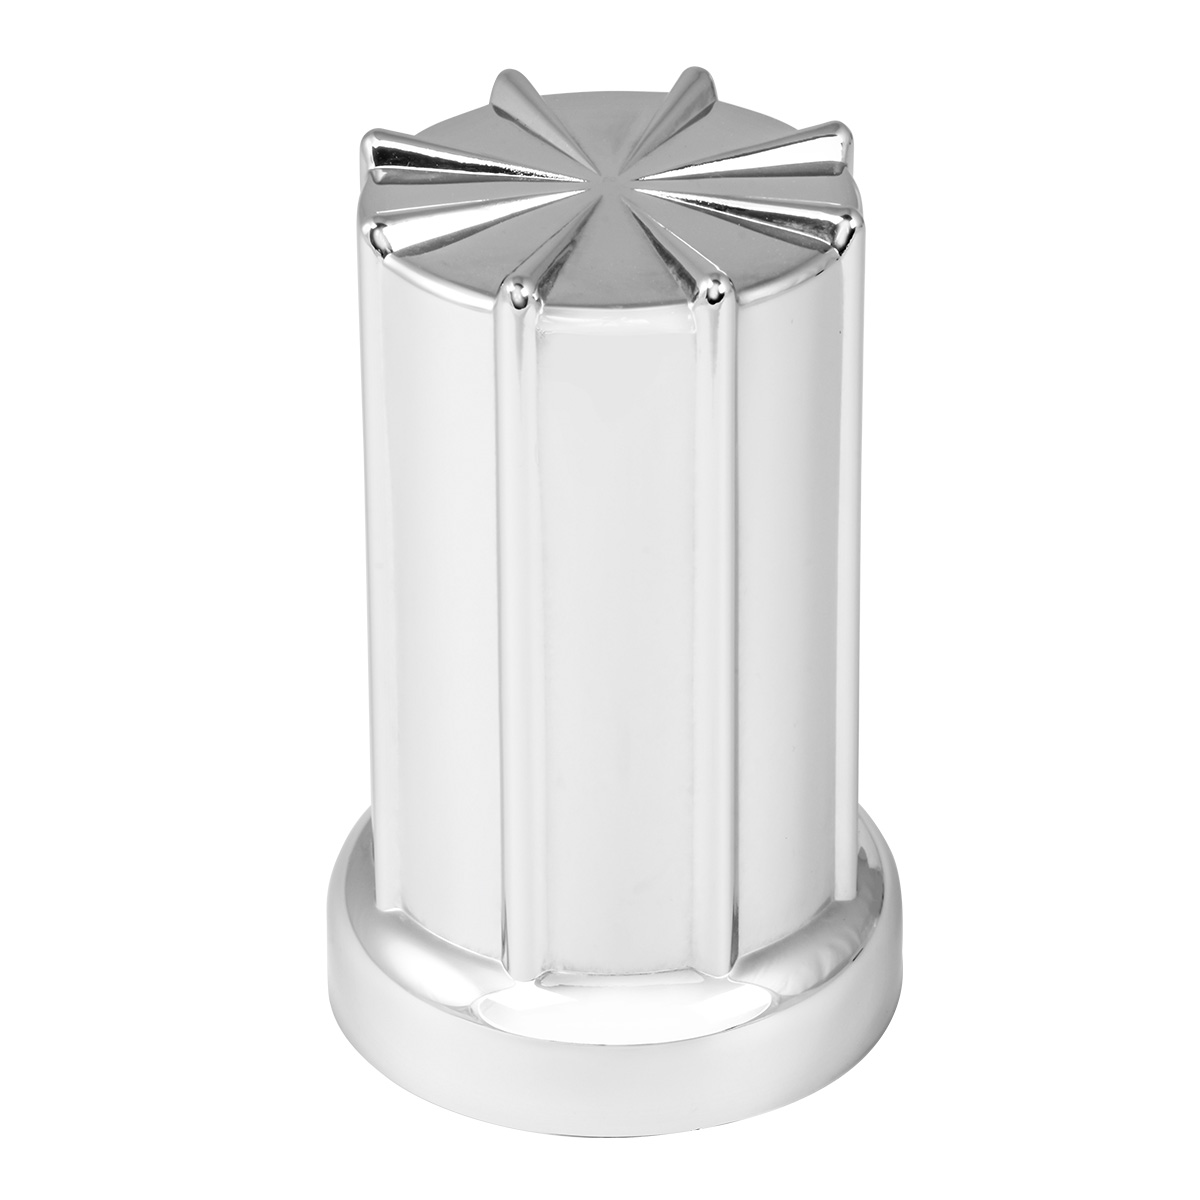 8 Spoke 33mm Lug Nut Cover